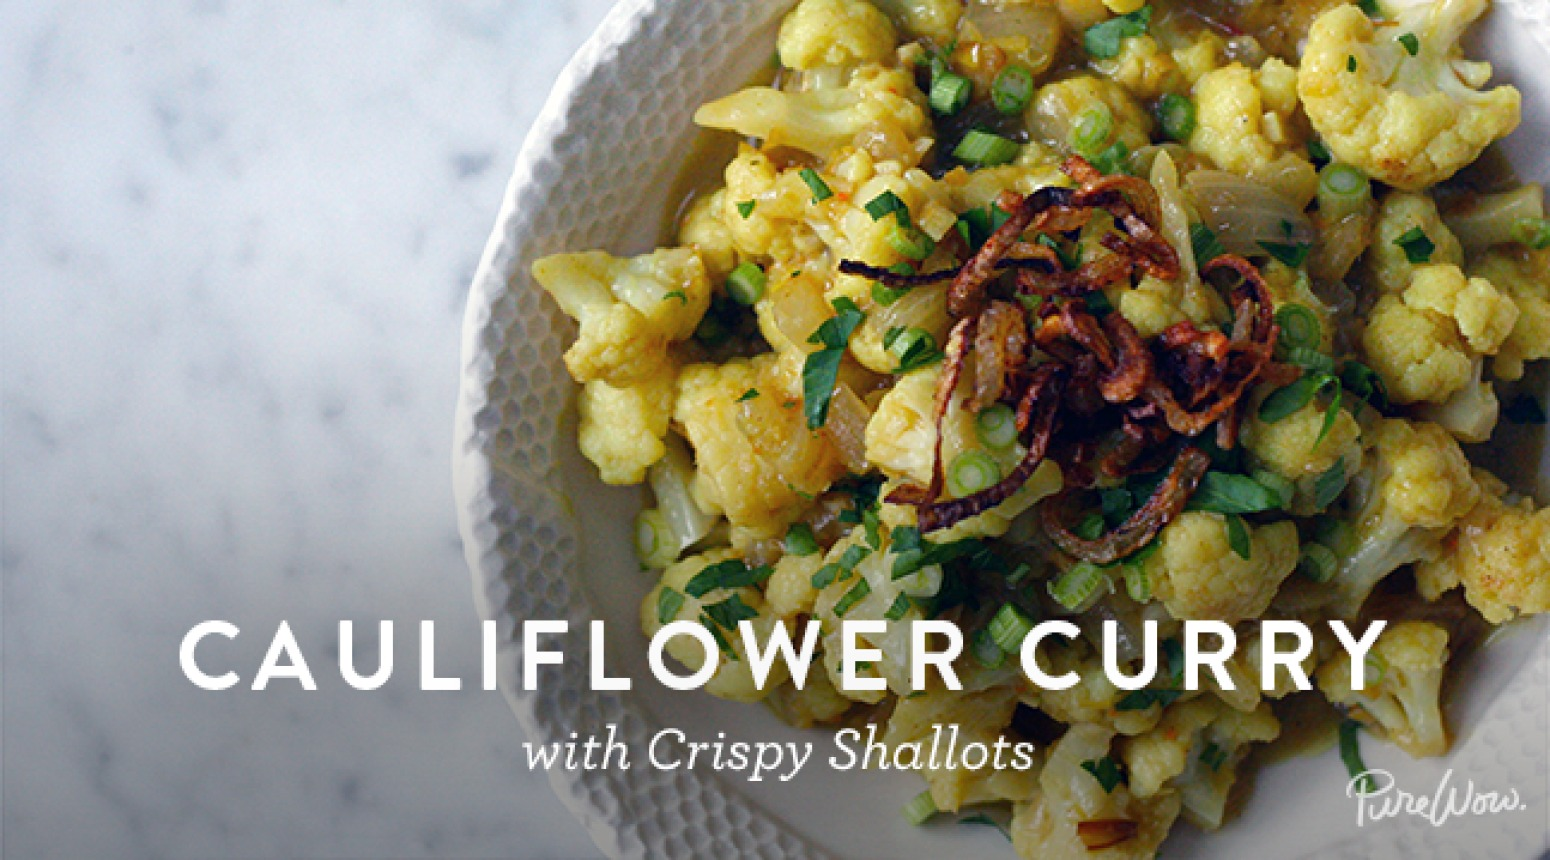 Cauliflower Curry with Crispy Shallots Recipe | Just A Pinch Recipes